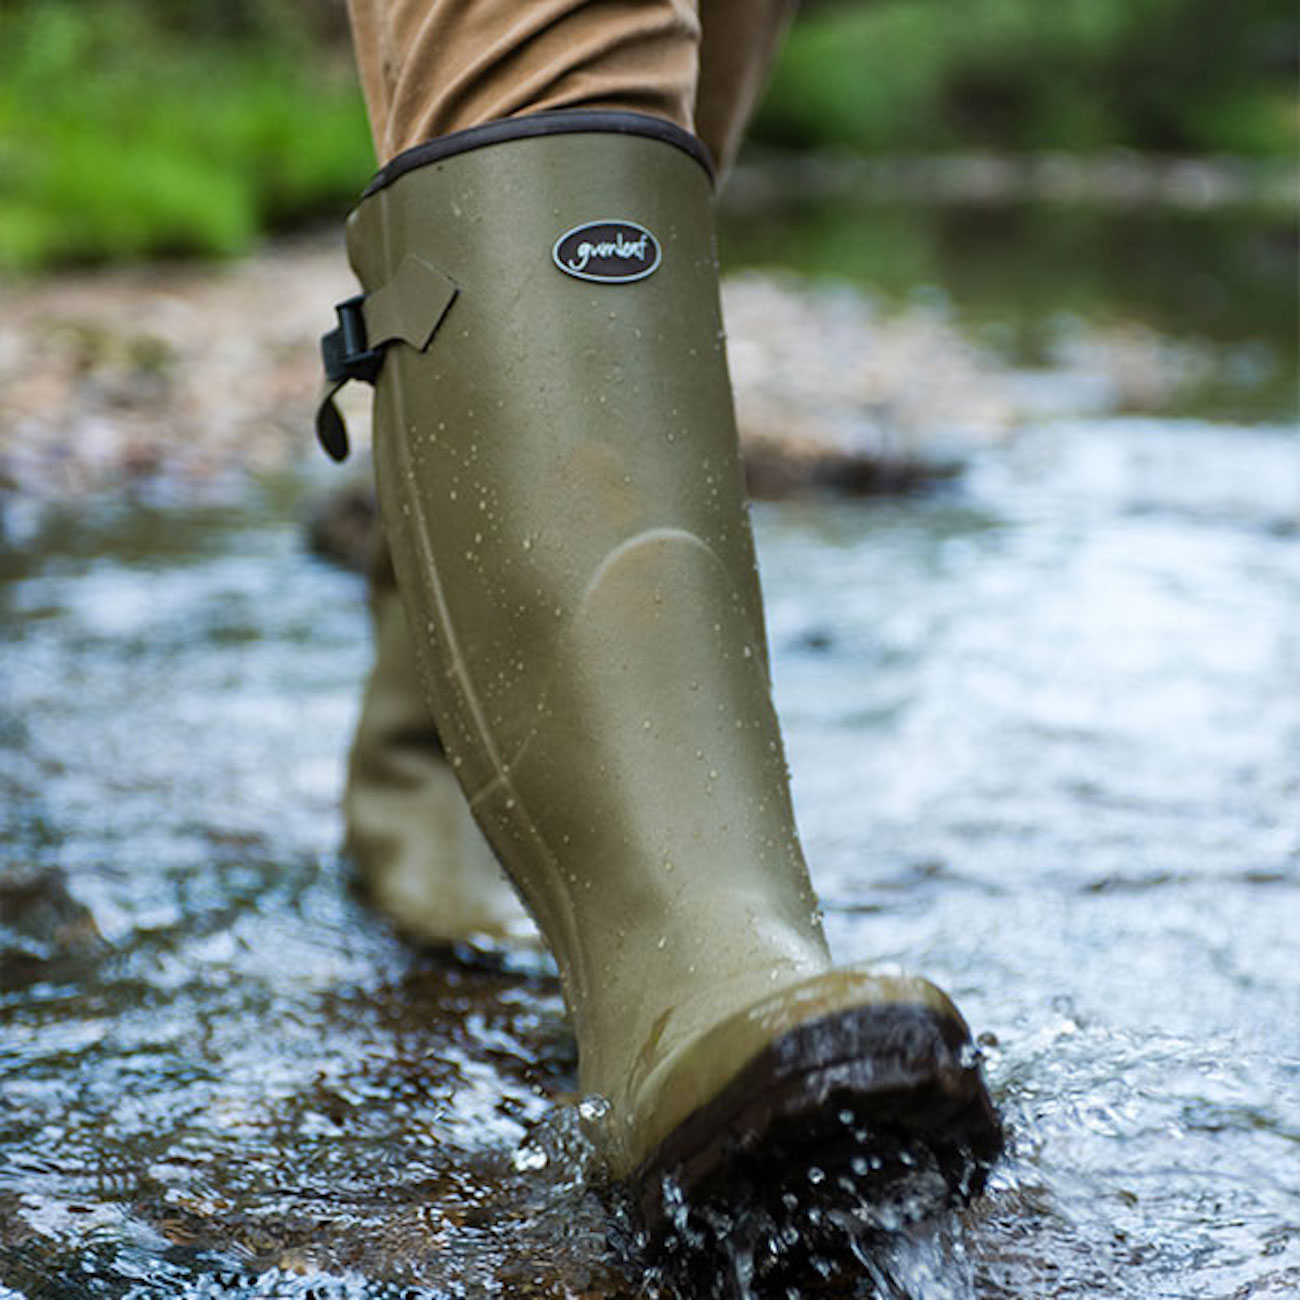 "<p>Hand-made in Europe using natural rubber for durability, Gumleaf's Royal Zip boots are neoprene lined for warmth in cool-to-cold temperatures. The heavy-duty zipper is gusseted (so the boots remain 100 percent waterproof with the zipper up or down) and allows for speedy removal. /{&nbsp;}<a  href=""https://www.gumleafusa.com/"" target=""_blank"" title=""https://www.gumleafusa.com/"">Website{&nbsp;}</a>/ Price: $350 / Image courtesy of Gumleaf USA // Published: 12.6.20</p>"